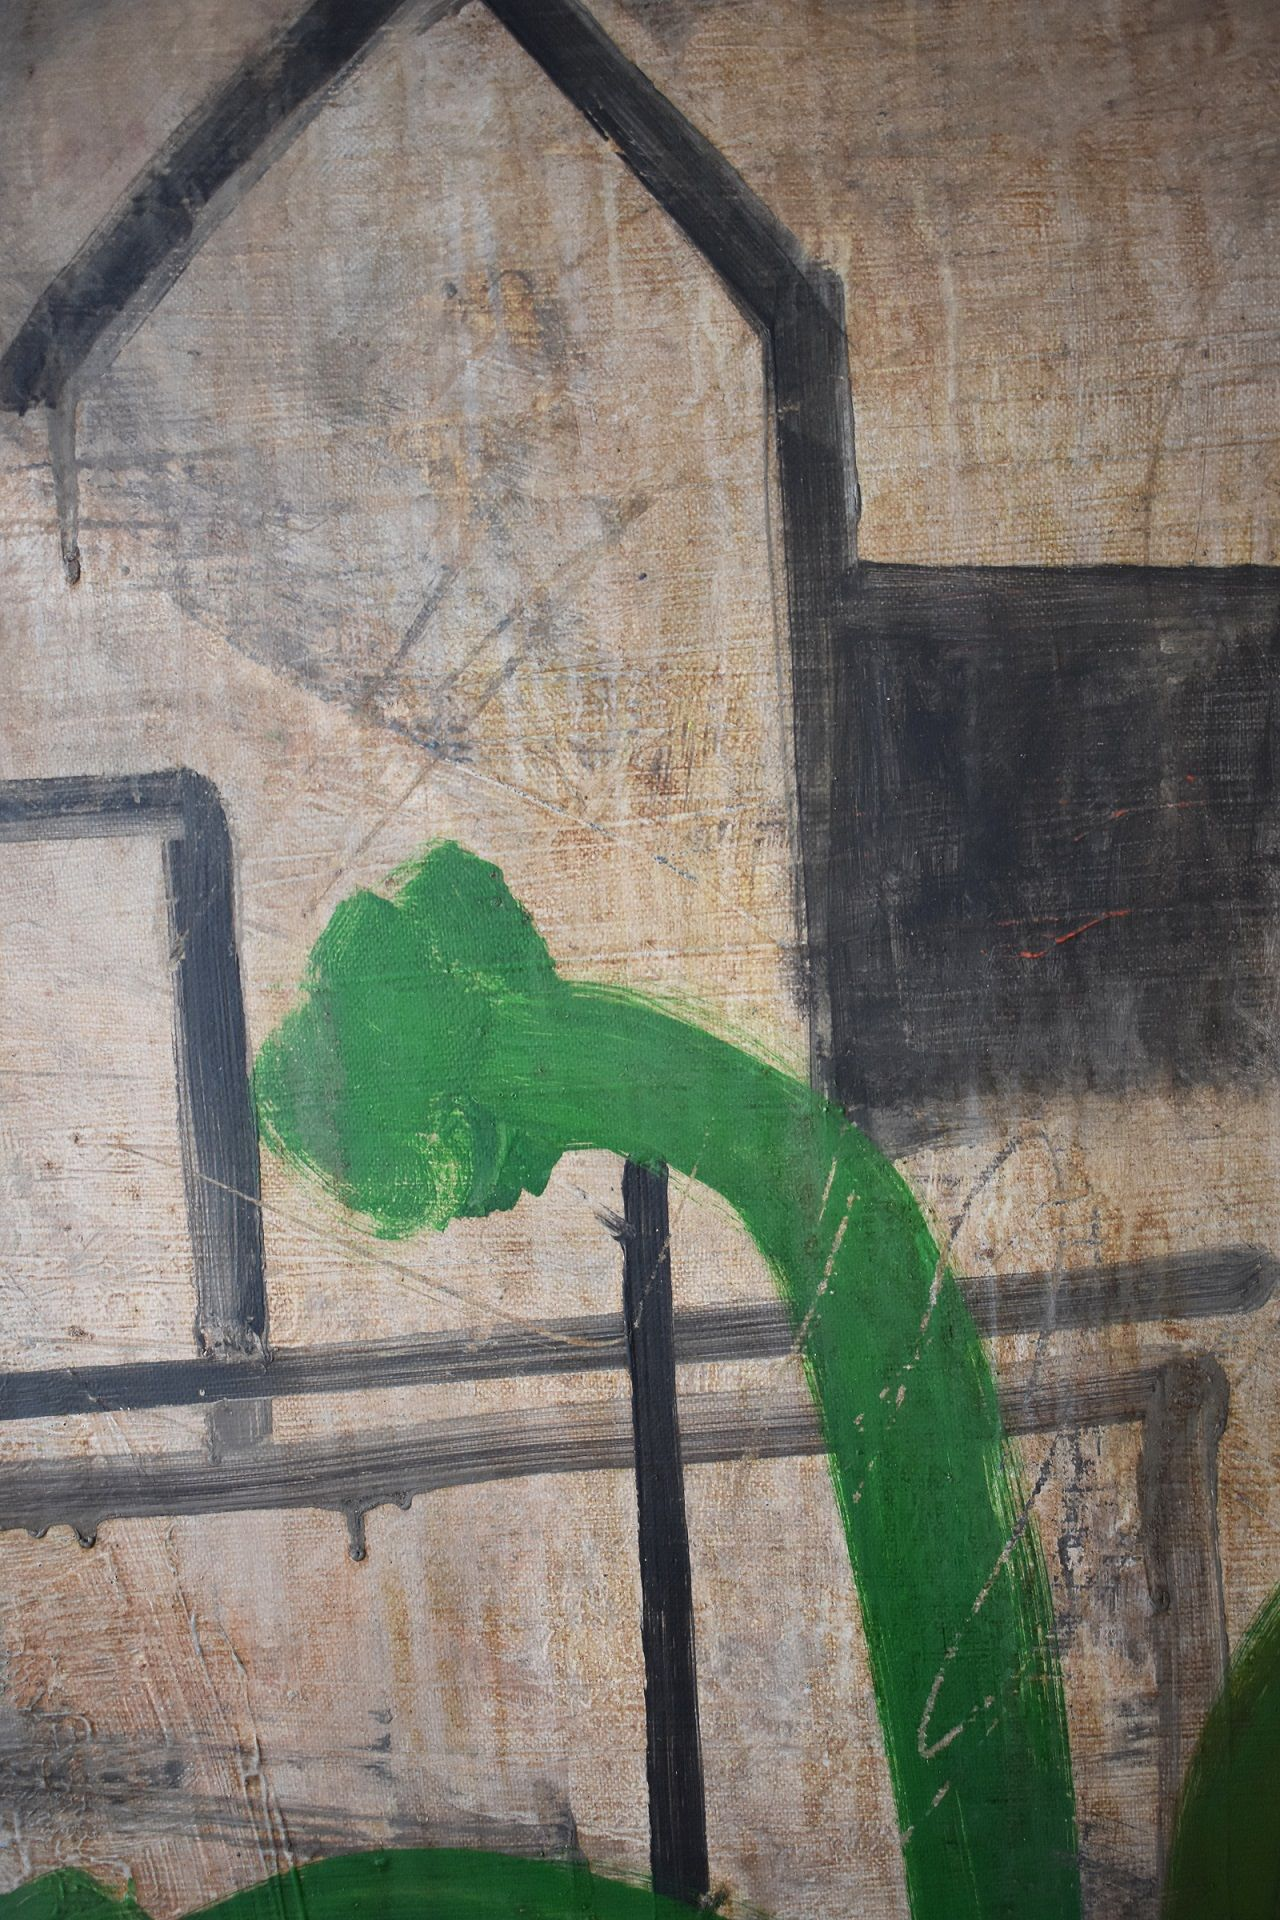 CONG I,Ramon Enrich,Contemporary painting, detail 2